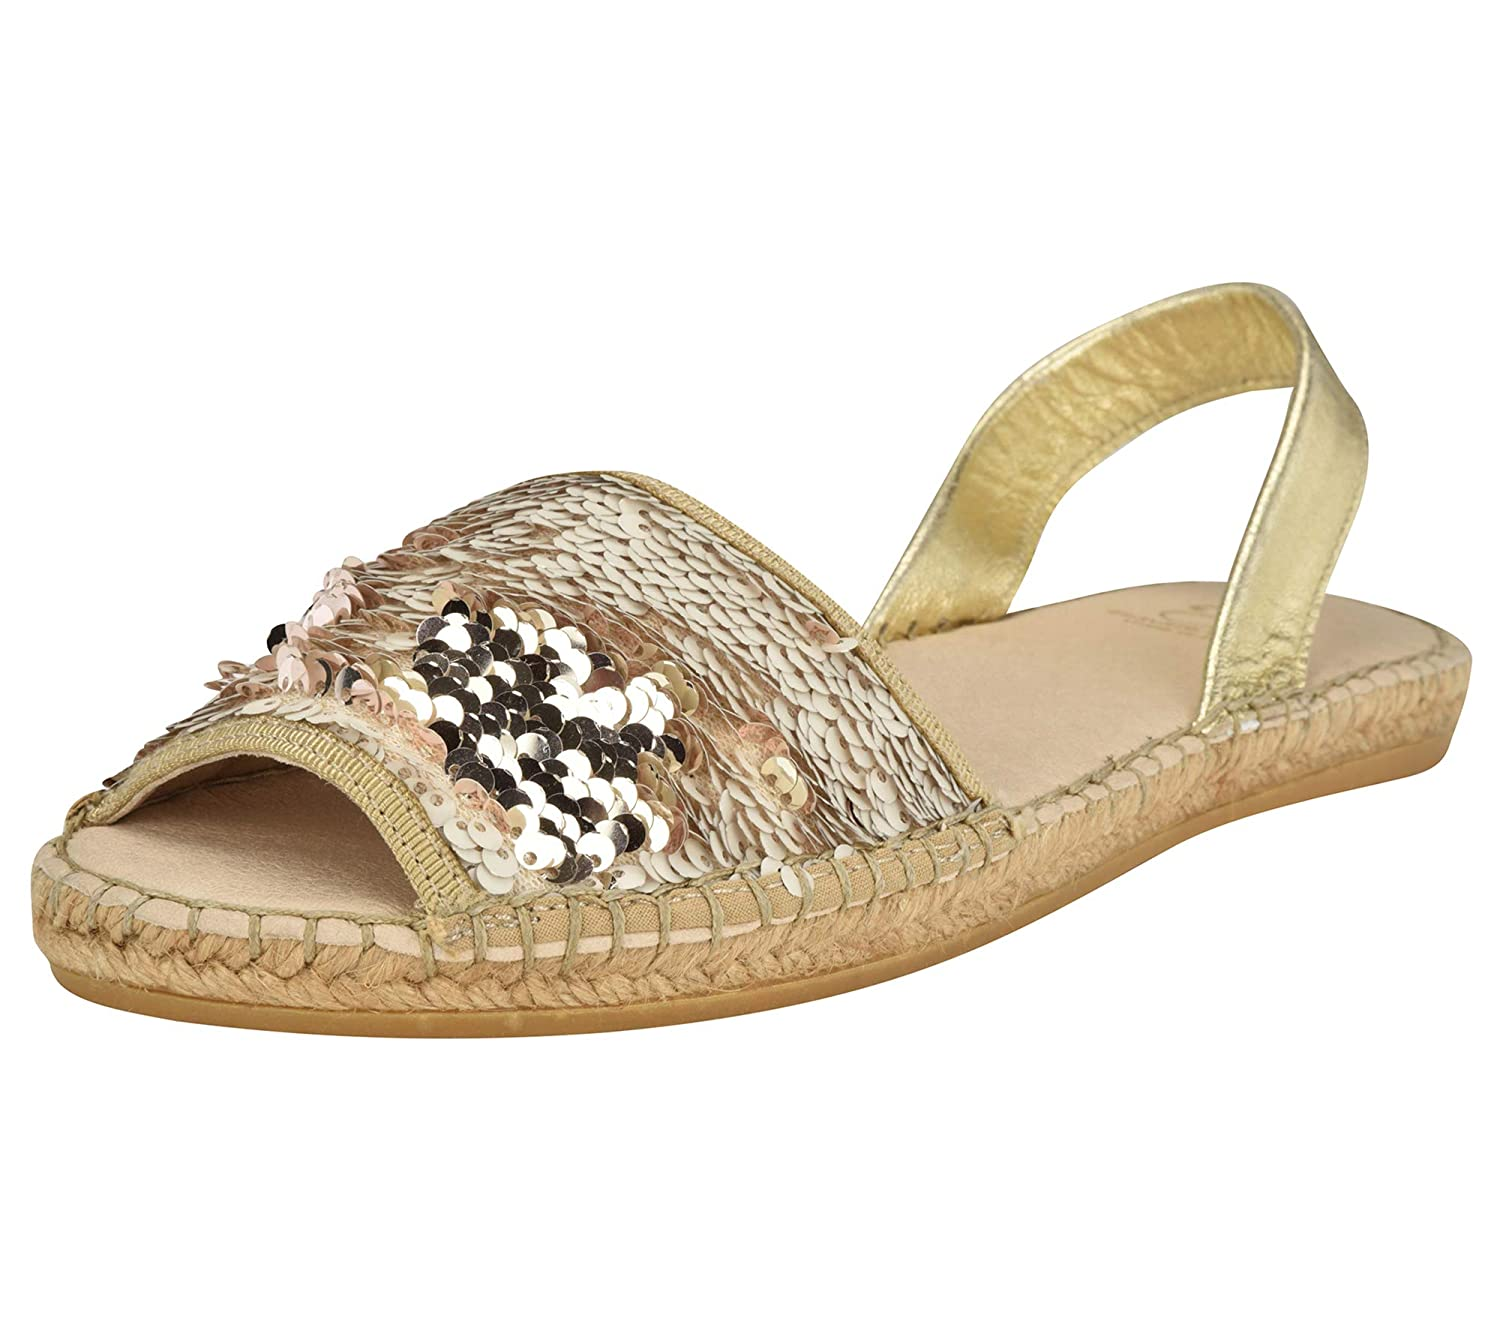 ba8462994 Ankle Strap Black Salmon-Silver/Rose Gold Sparkling Espadrille Slip-on  Shoes with Two Tone Embellished ...